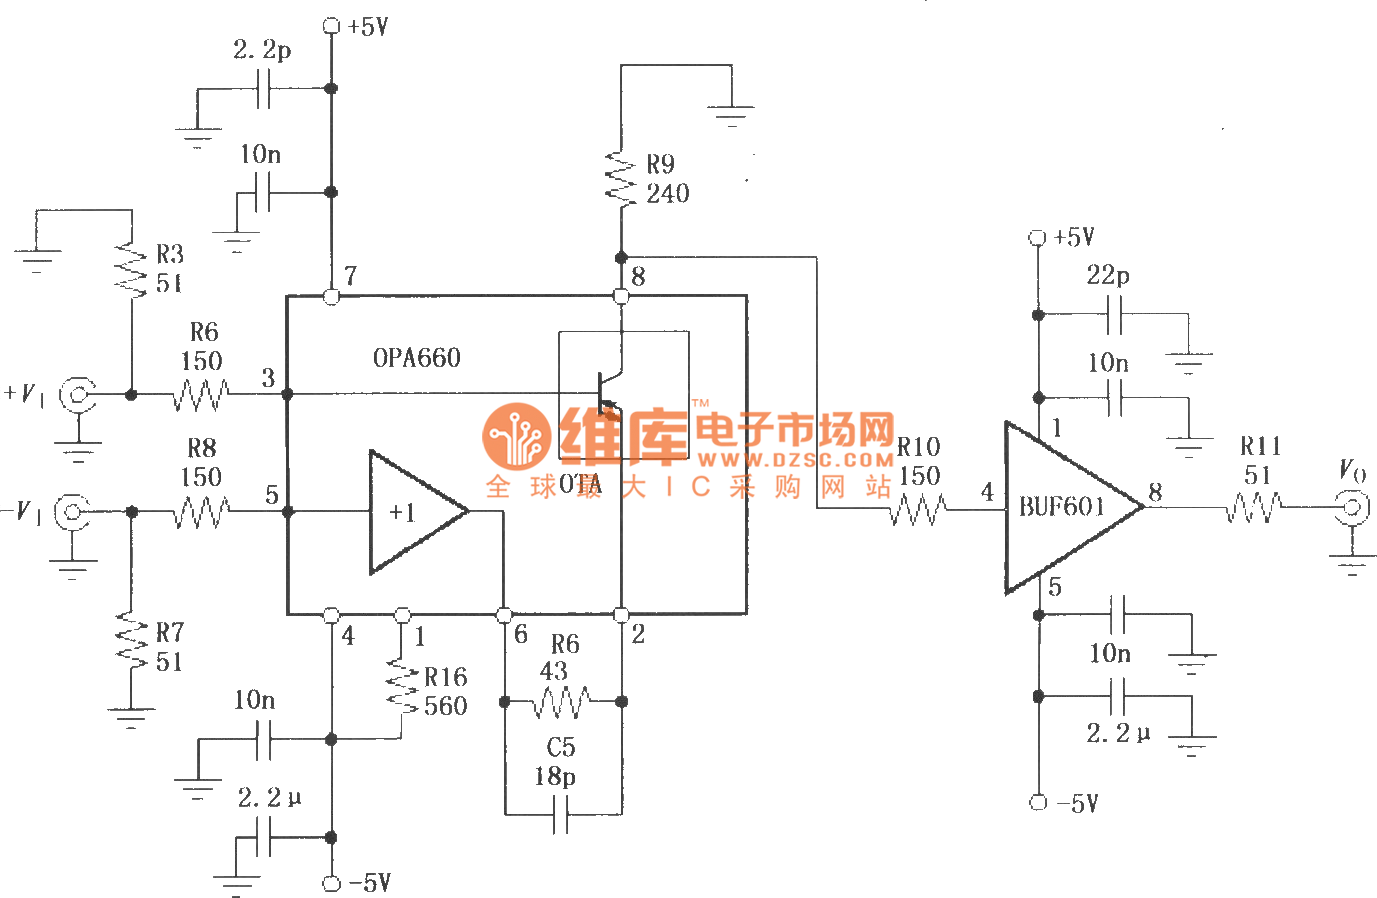 400mhz Differential Amplifier Circuit With Broadband 555 Internal 555circuit Diagram Seekiccom Transconductance Operational And Buffer Opa660 Buf601